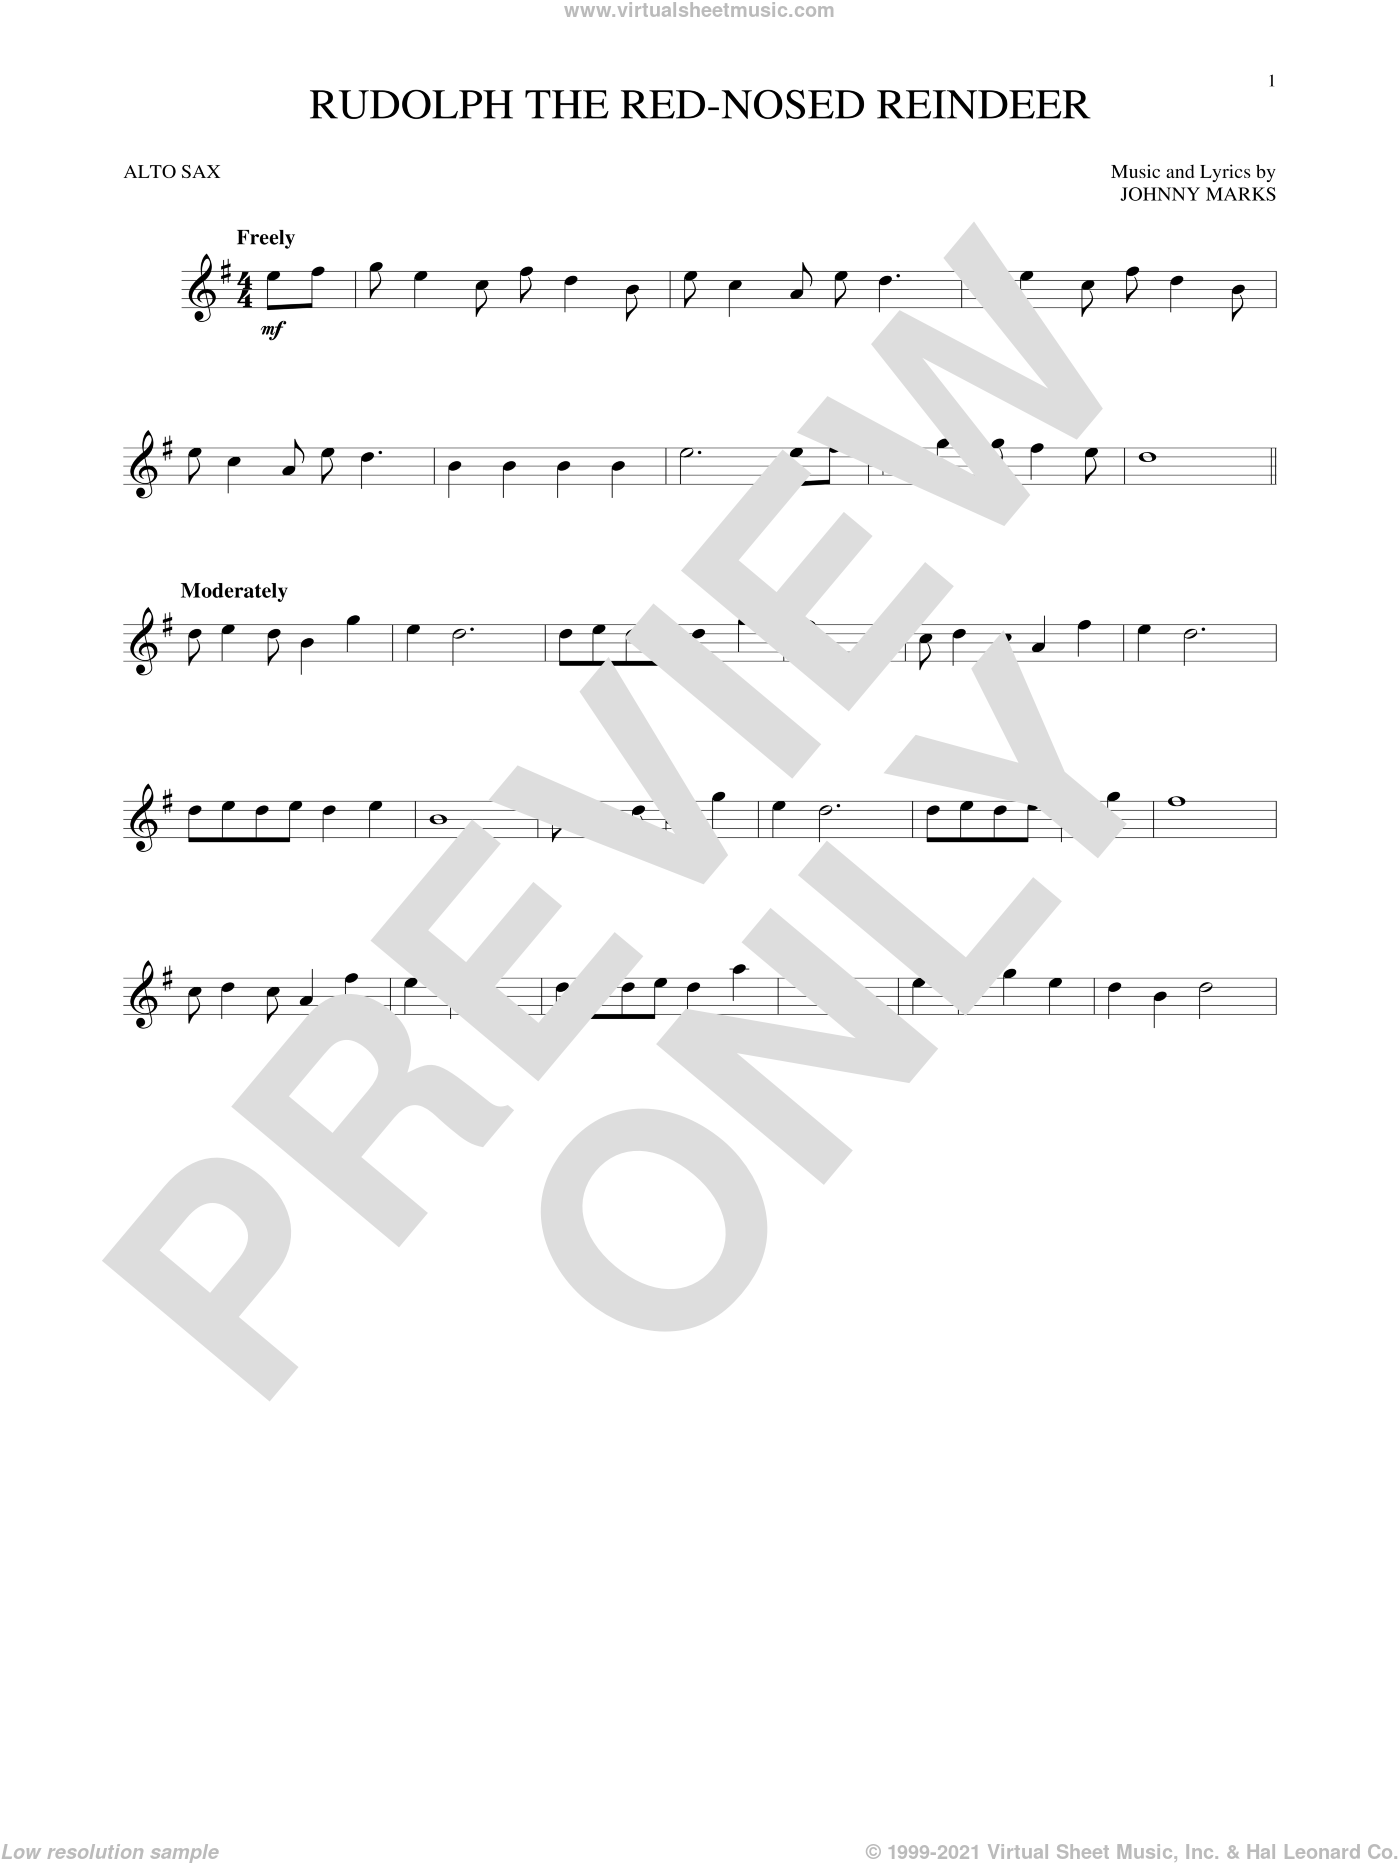 Rudolph The Red-Nosed Reindeer sheet music for alto saxophone solo by Johnny Marks and John Denver, intermediate skill level